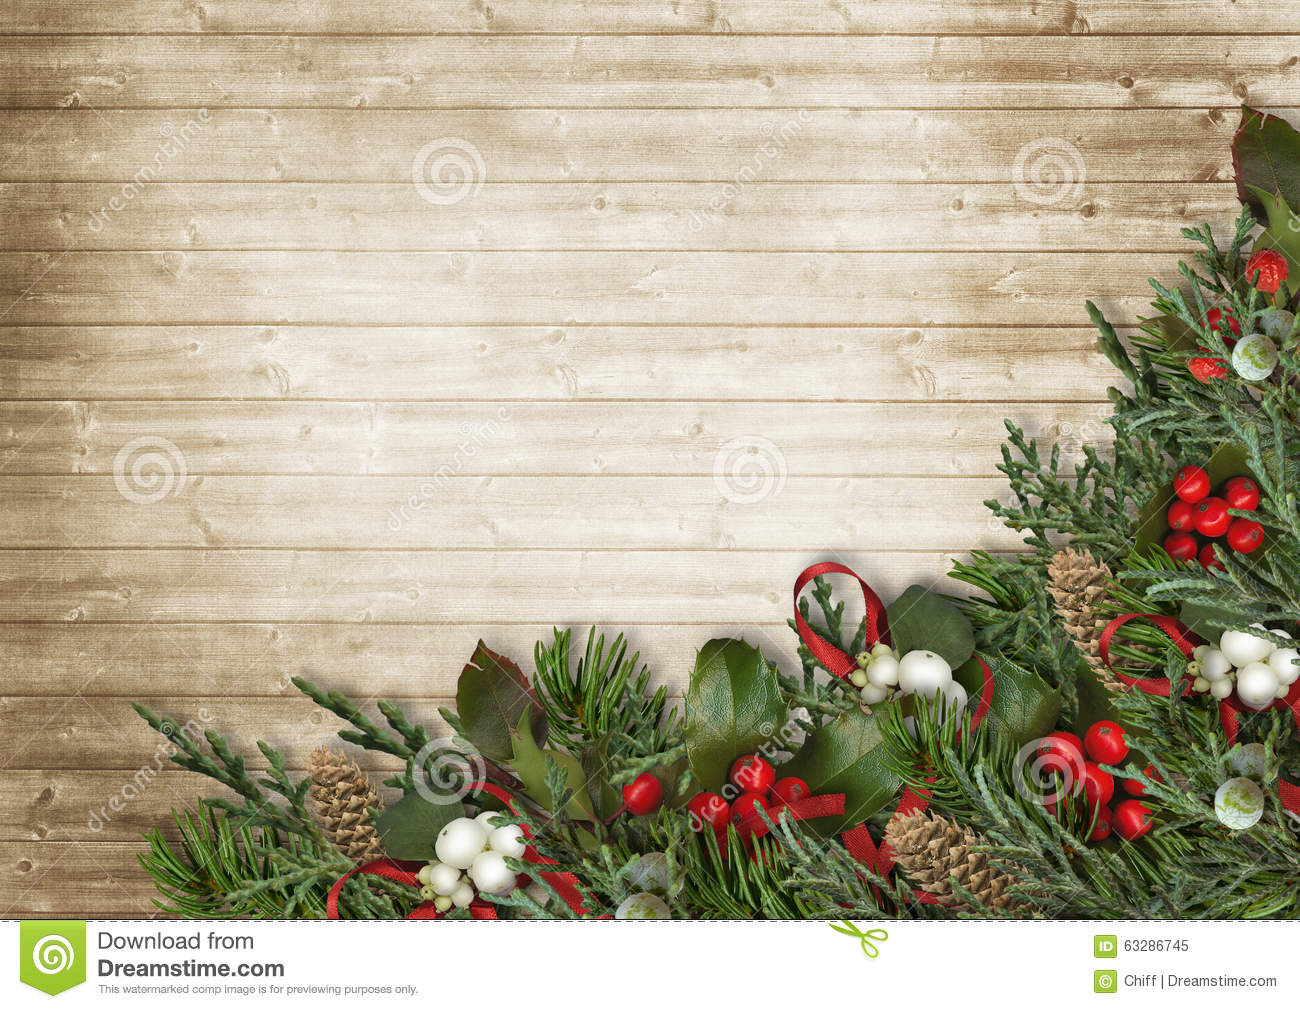 Christmas Wood Background.Christmas Wooden Background With Poinsettia Holly And Fir